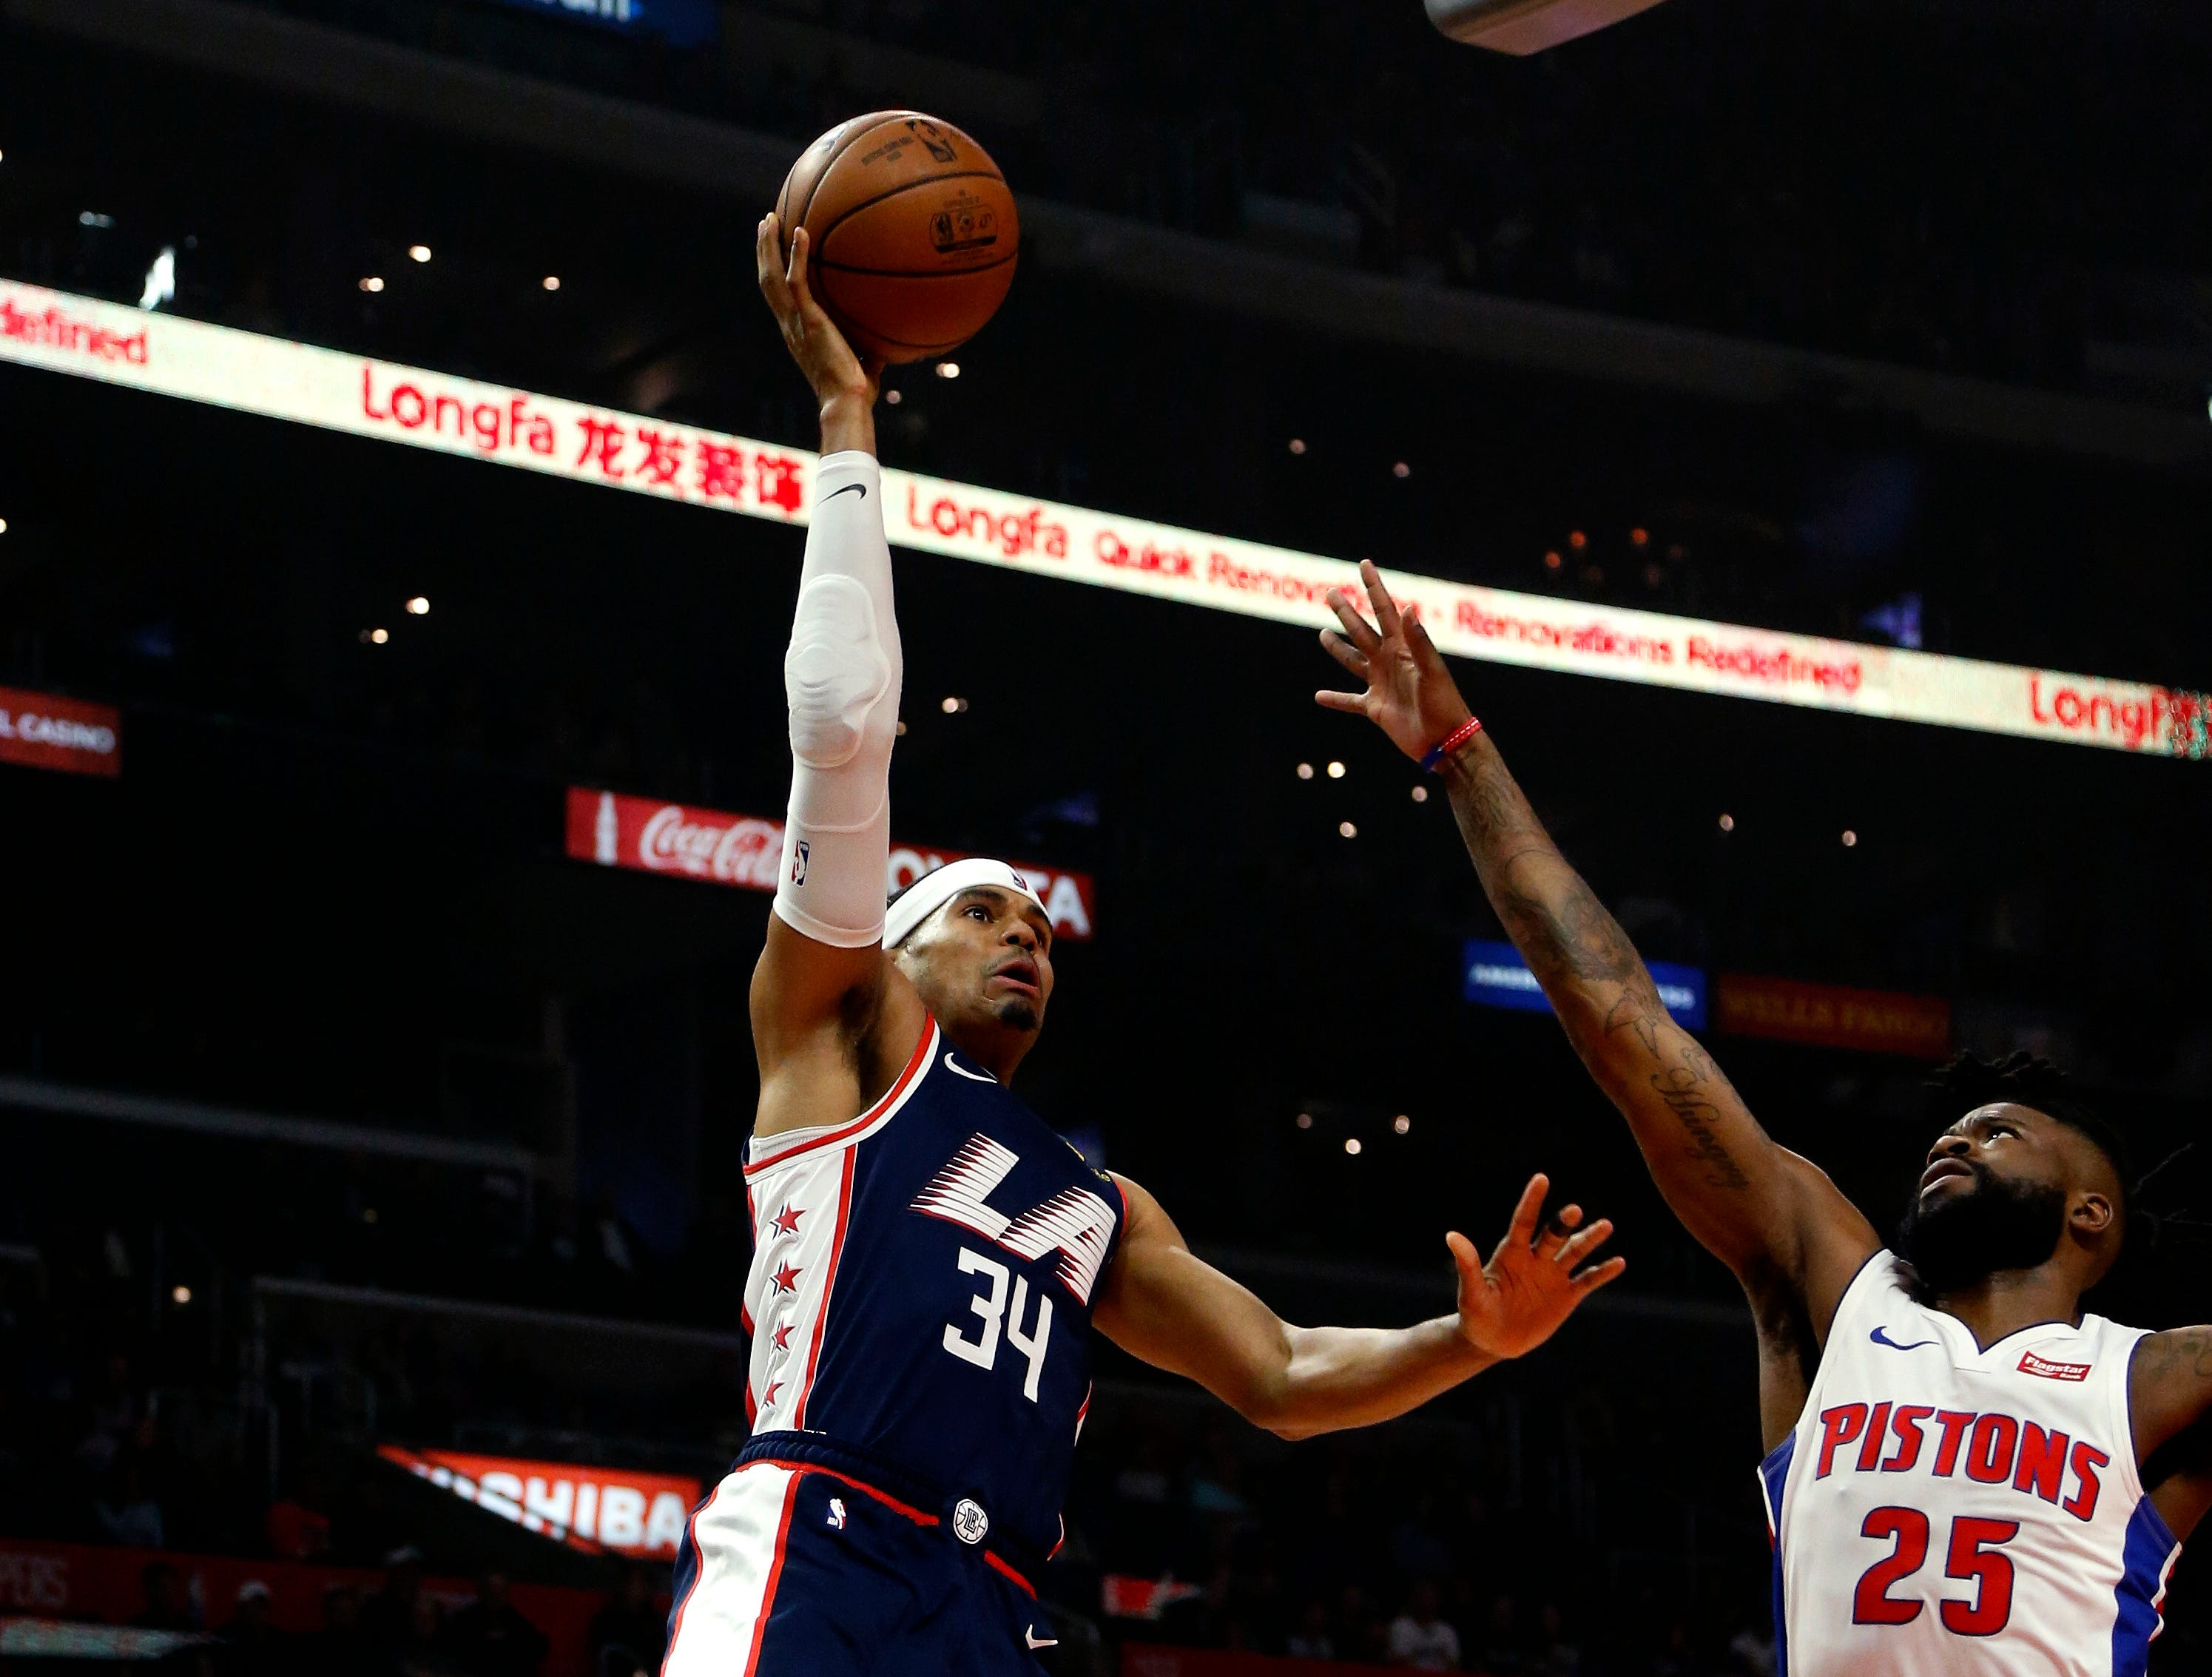 Los Angeles Clippers' Tobias Harris, left, shoots against Detroit Pistons' Reggie Bullock during the first half.